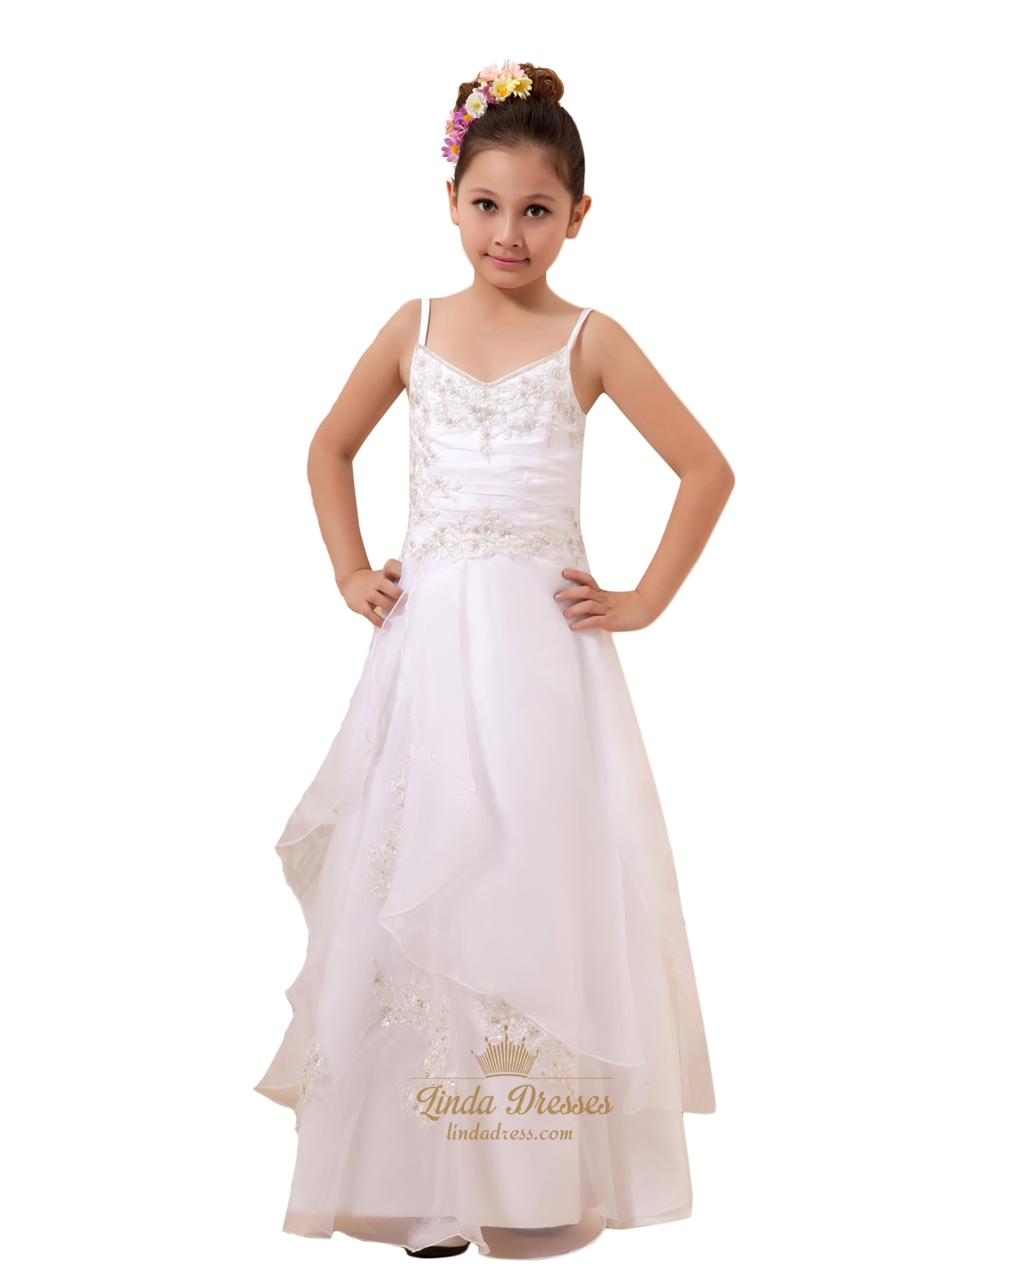 Flower girl dresses linda dress white spaghetti strap lace applique flower girl dresses double layered izmirmasajfo